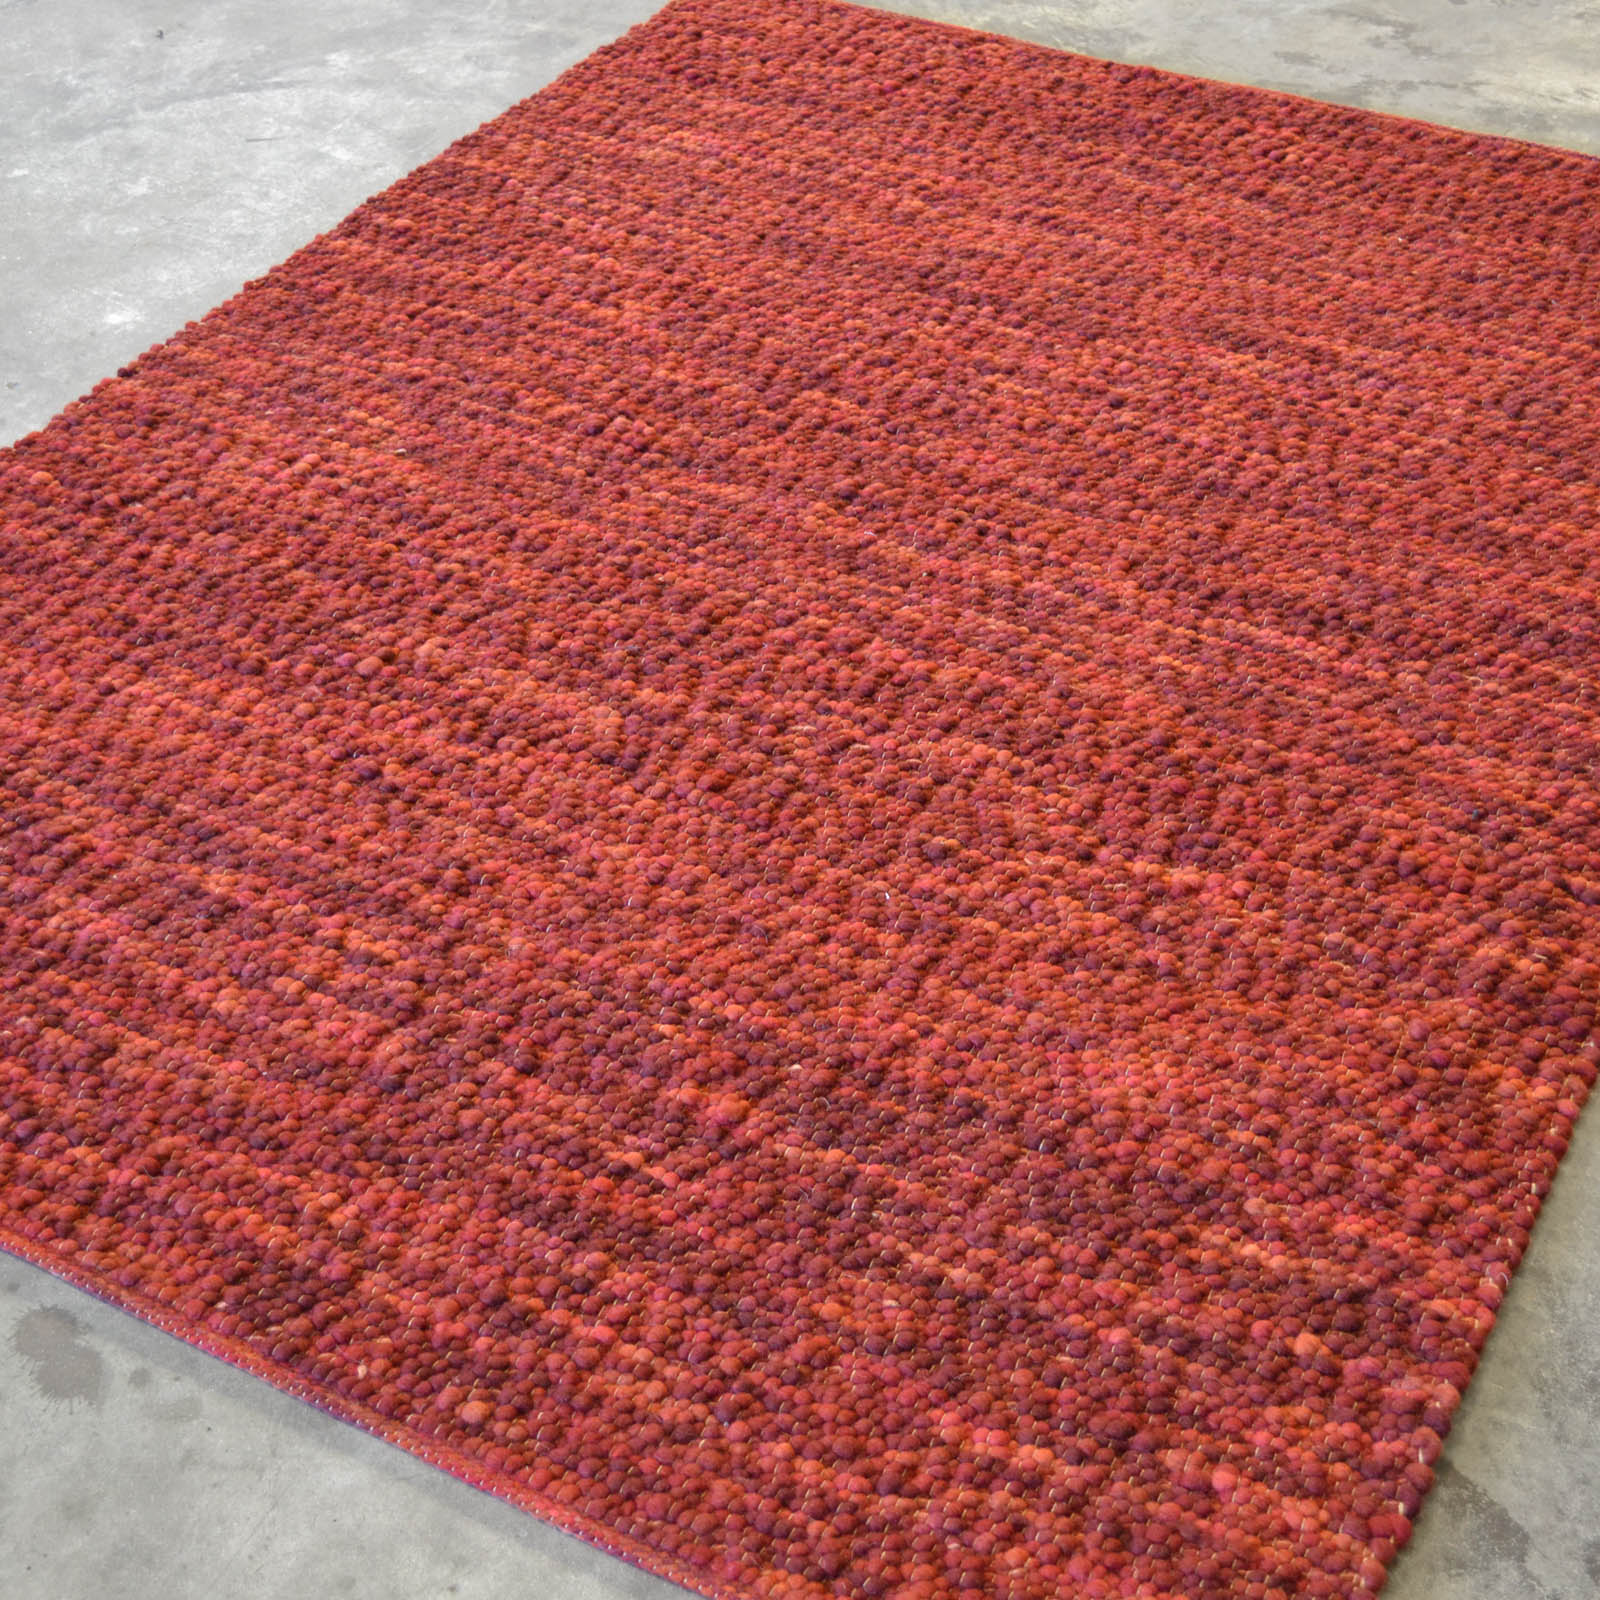 Stubble Rugs 29700 by Brink and Campman